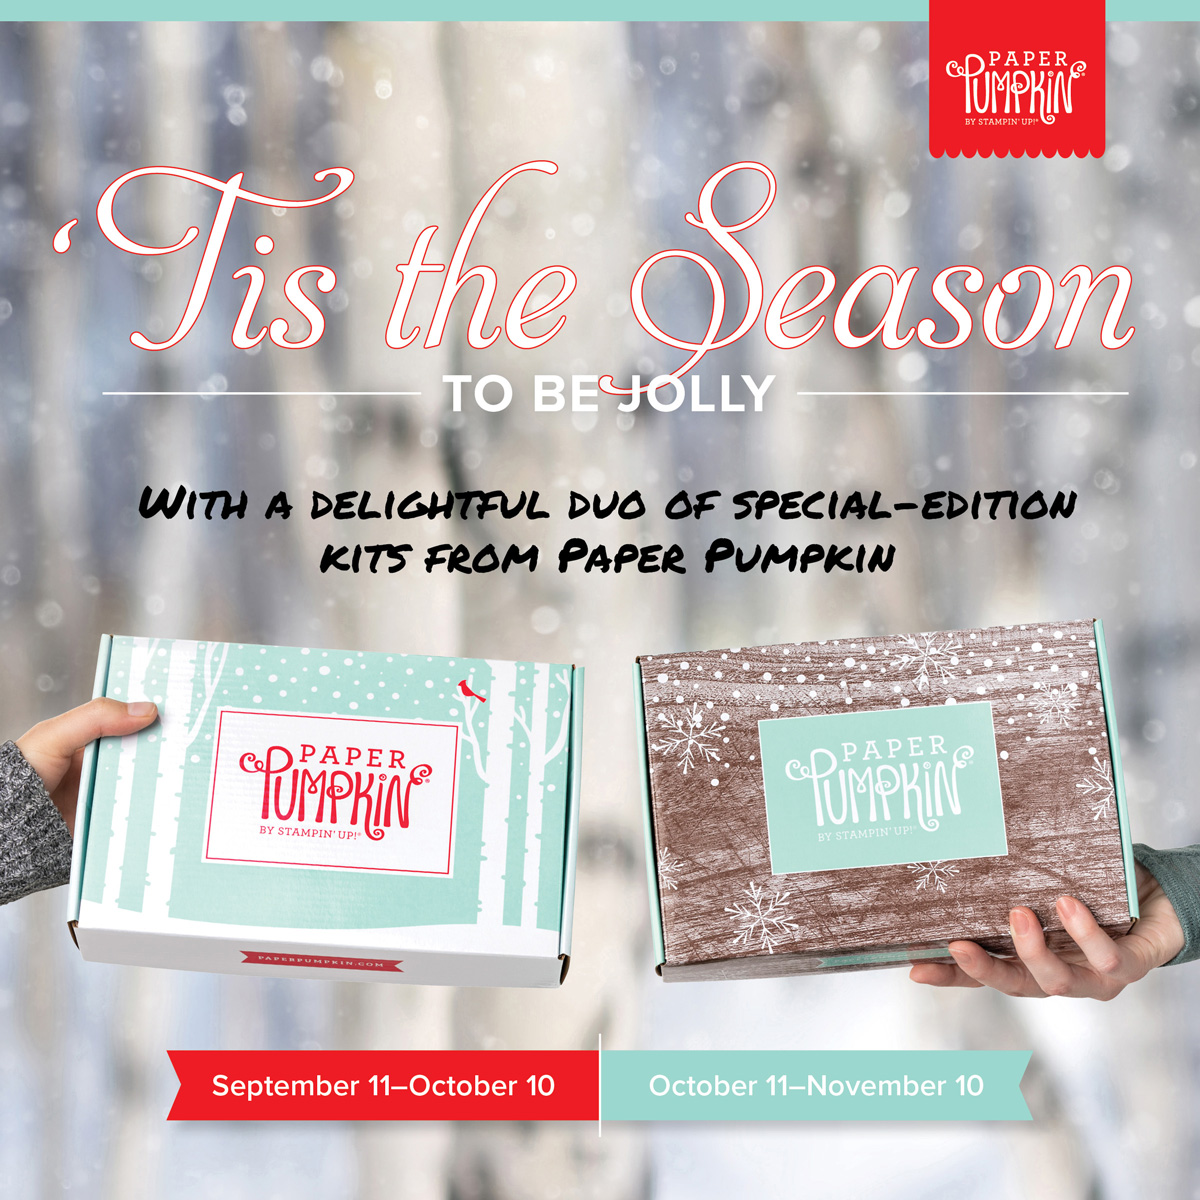 Sign up for Stampin' Up! Paper Pumpkin